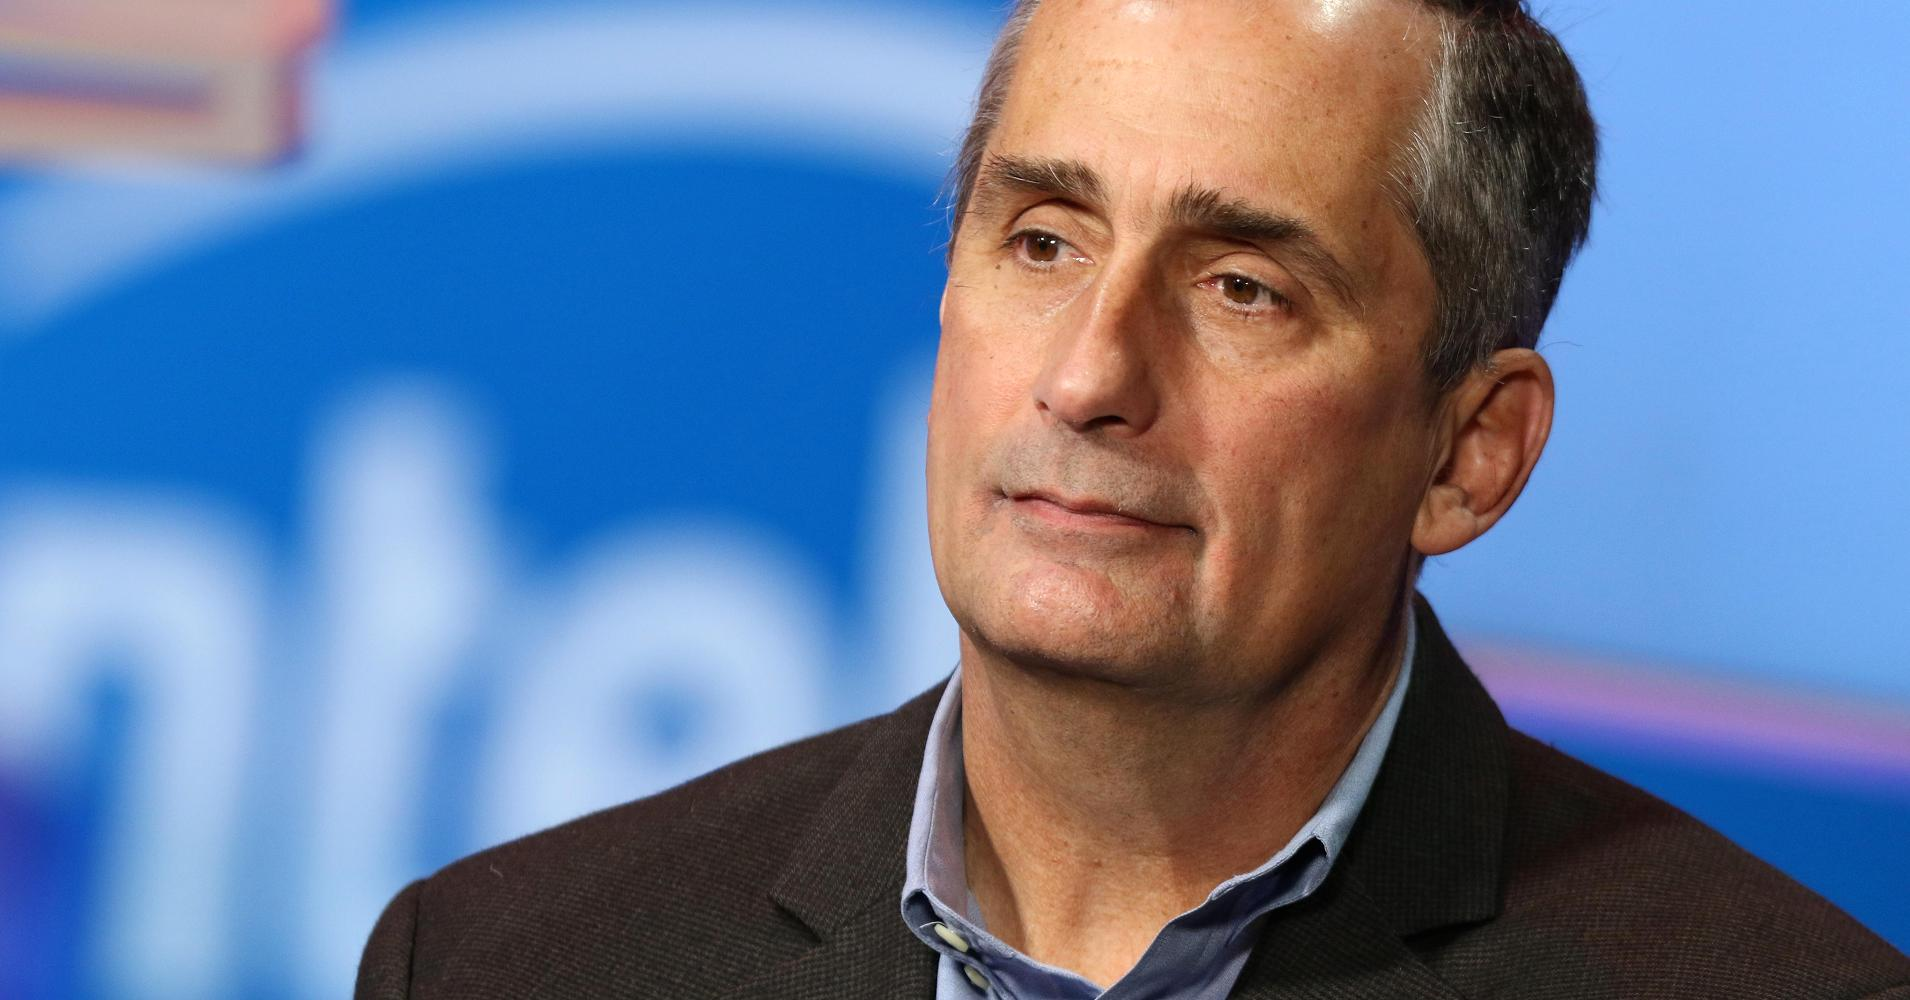 Intel CEO Brian Krzanich resigns over consensual relationship with employee